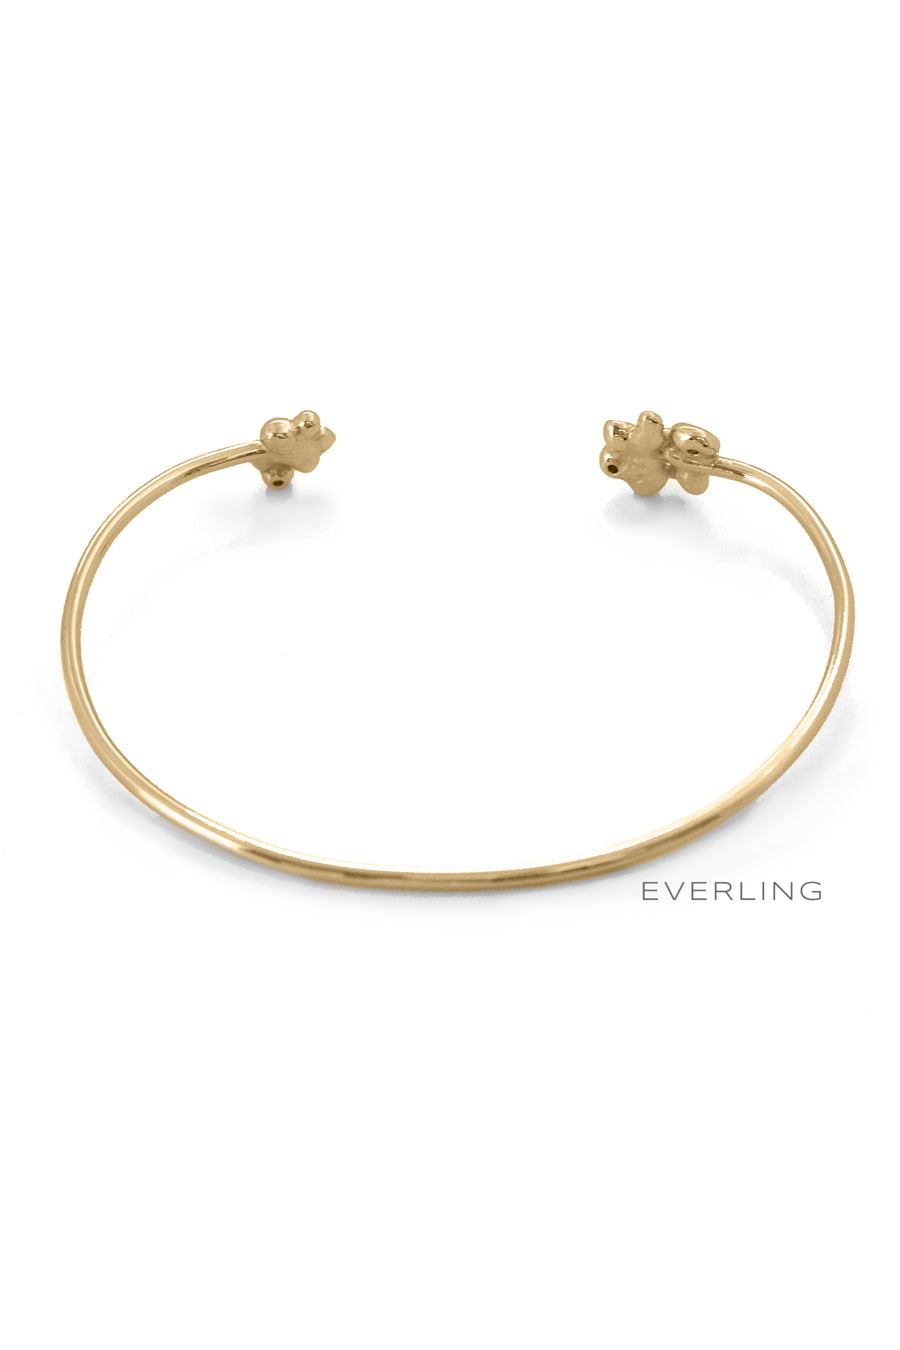 Back- Recycled 14K Yellow Gold Bubble and Diamond Accent Cuff Bracelet. #designerjewelry www.everlingjewelry.com